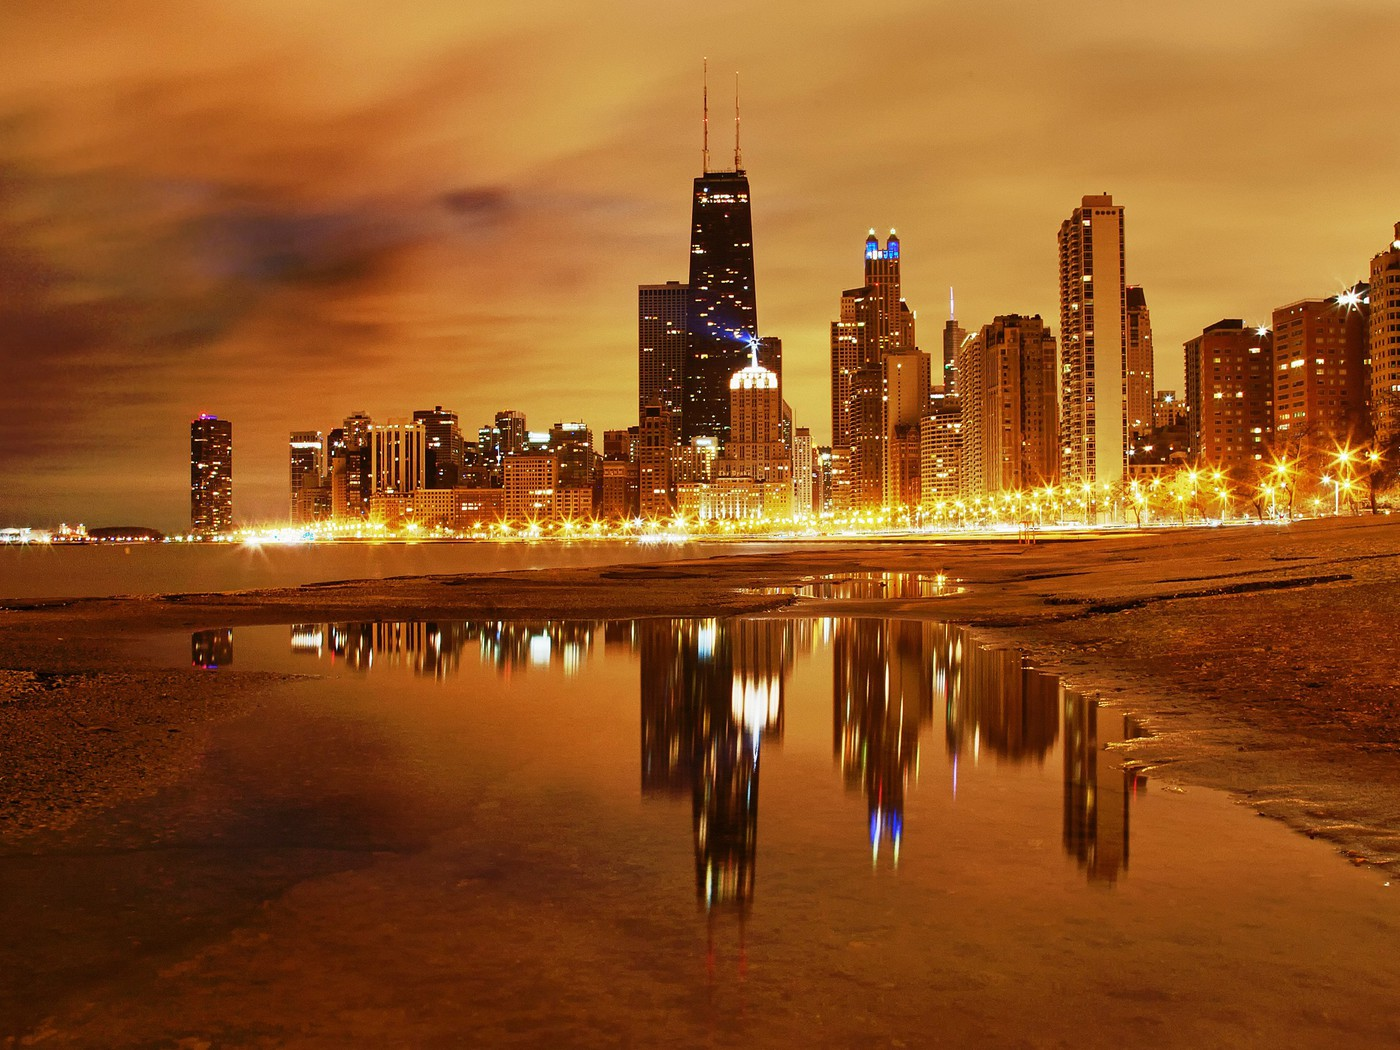 Best Hd Wallpapers For Iphone X Chicago Skyline At Night Wallpaper Allwallpaper In 536